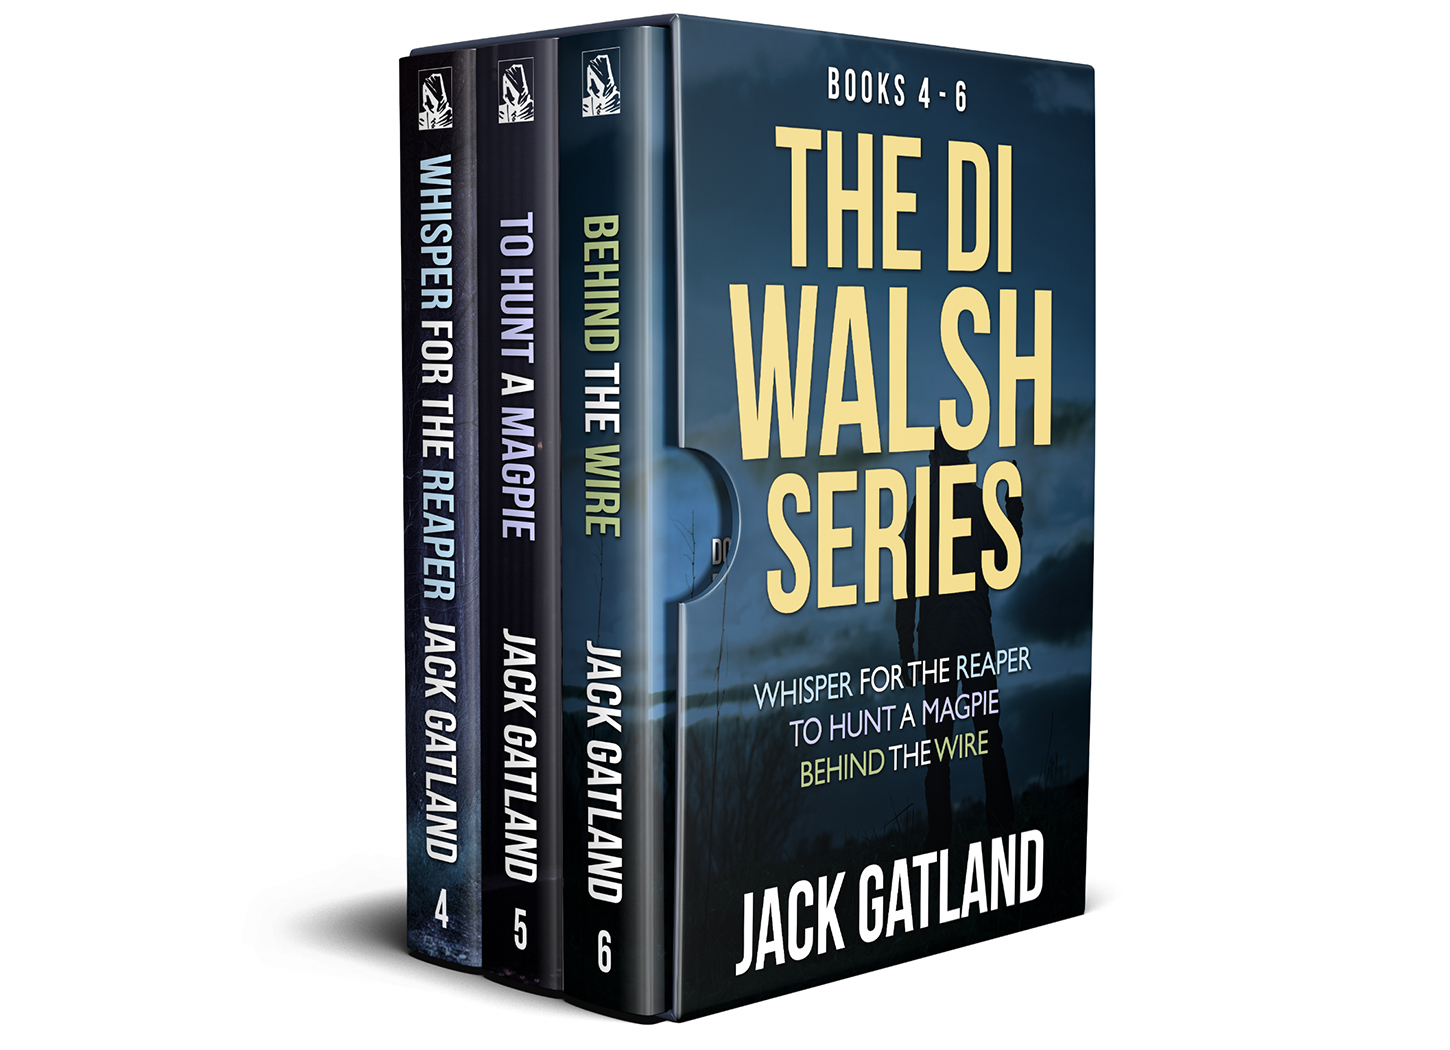 DECLAN WALSH BOXSET 2: available August 2021